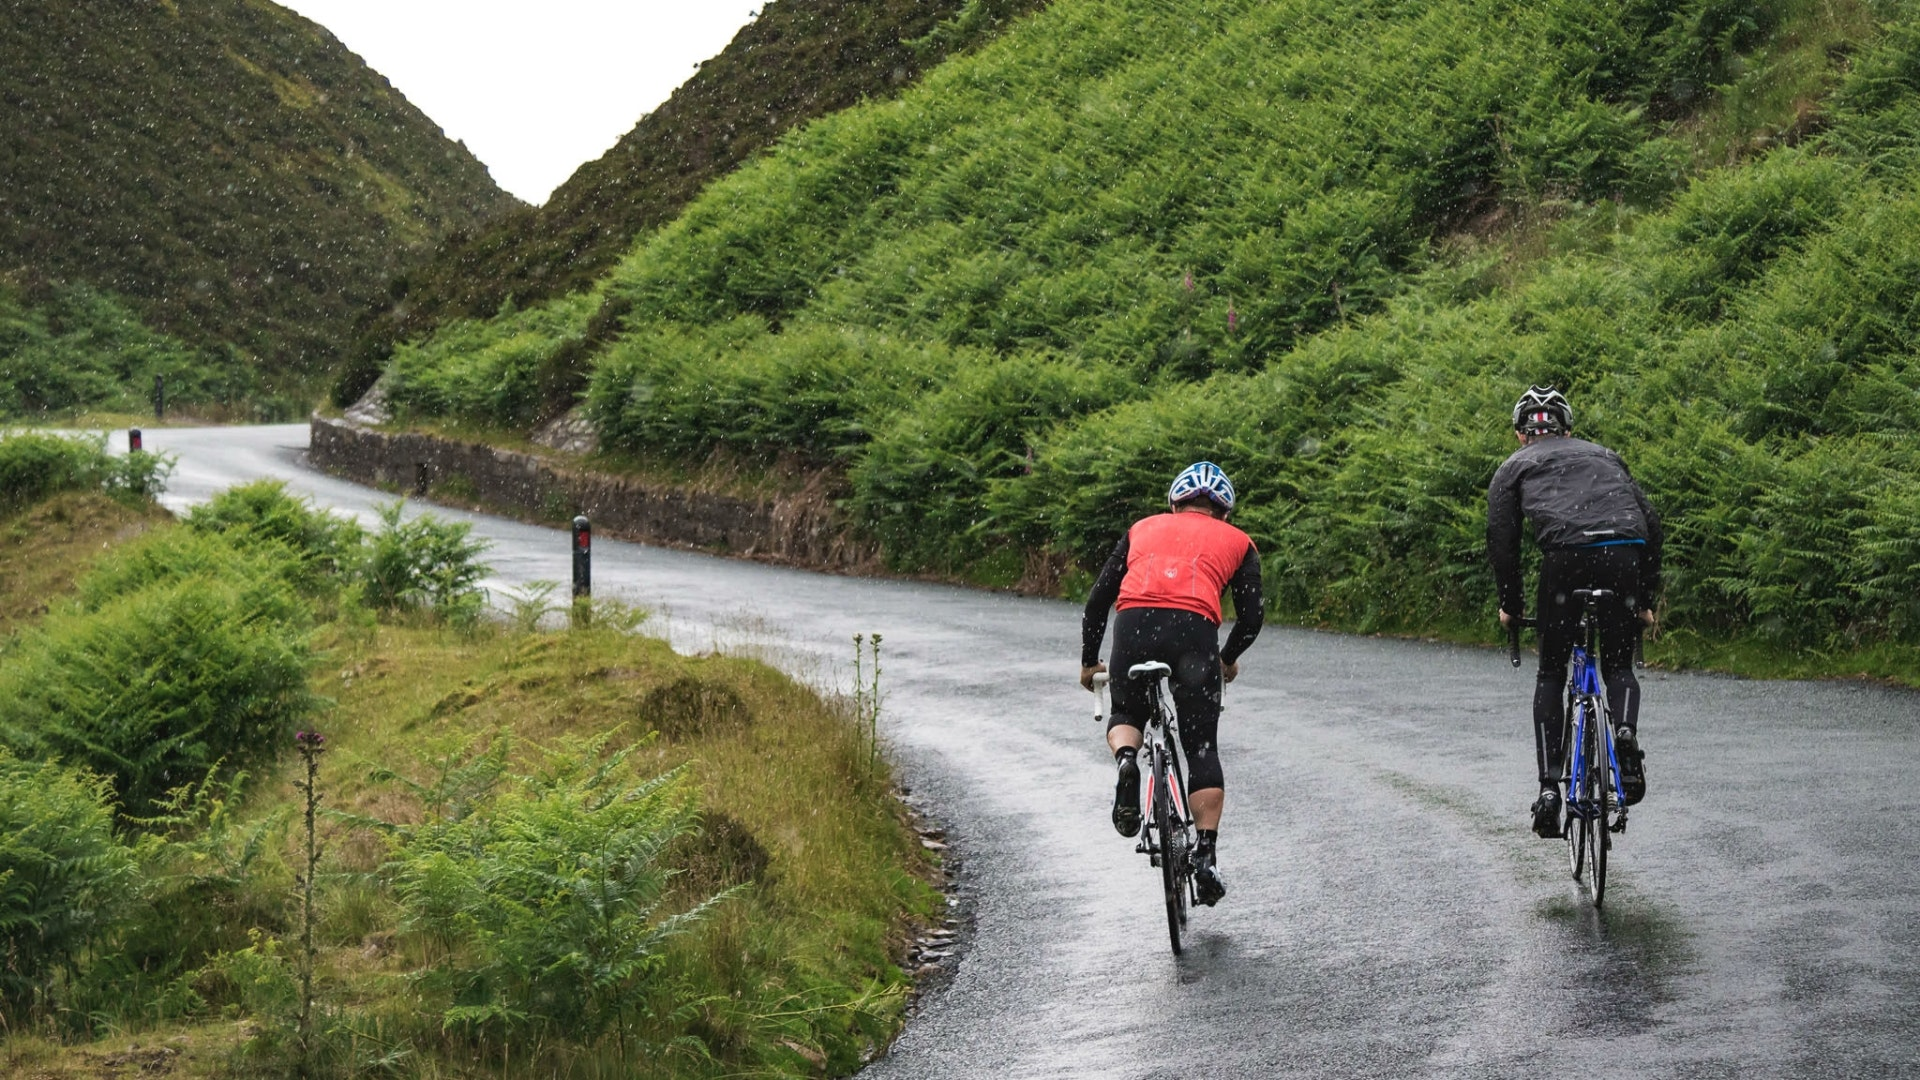 The UK has stunning riding on offer - but don't count on staying warm and dry (Pic: Scott Connor/Factory Media)